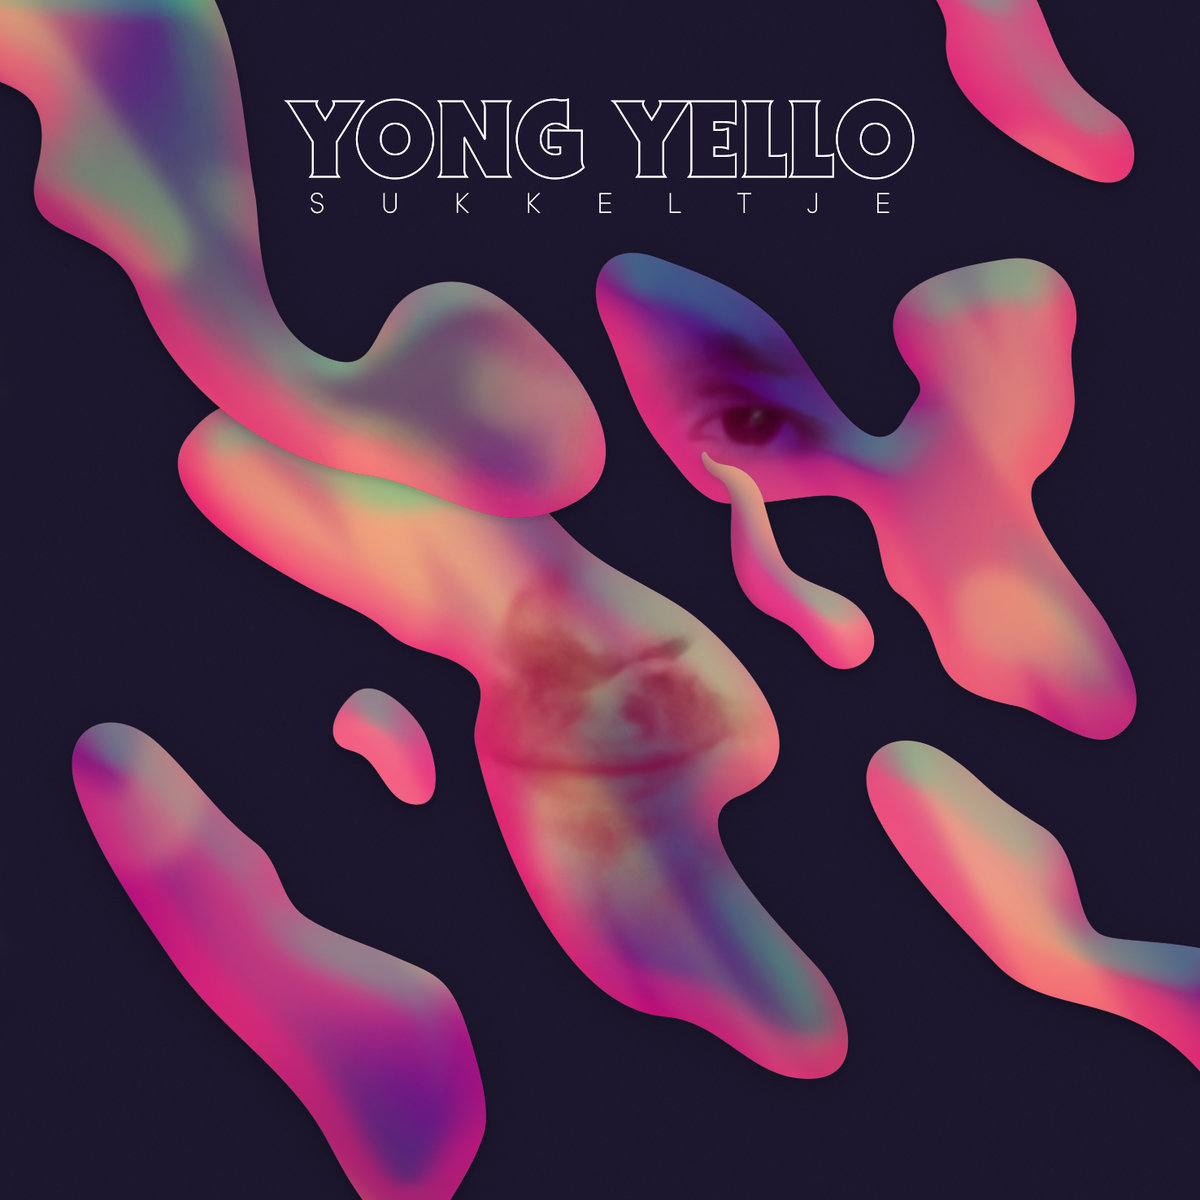 Yong Yello - Sukkeltje cover.jpg